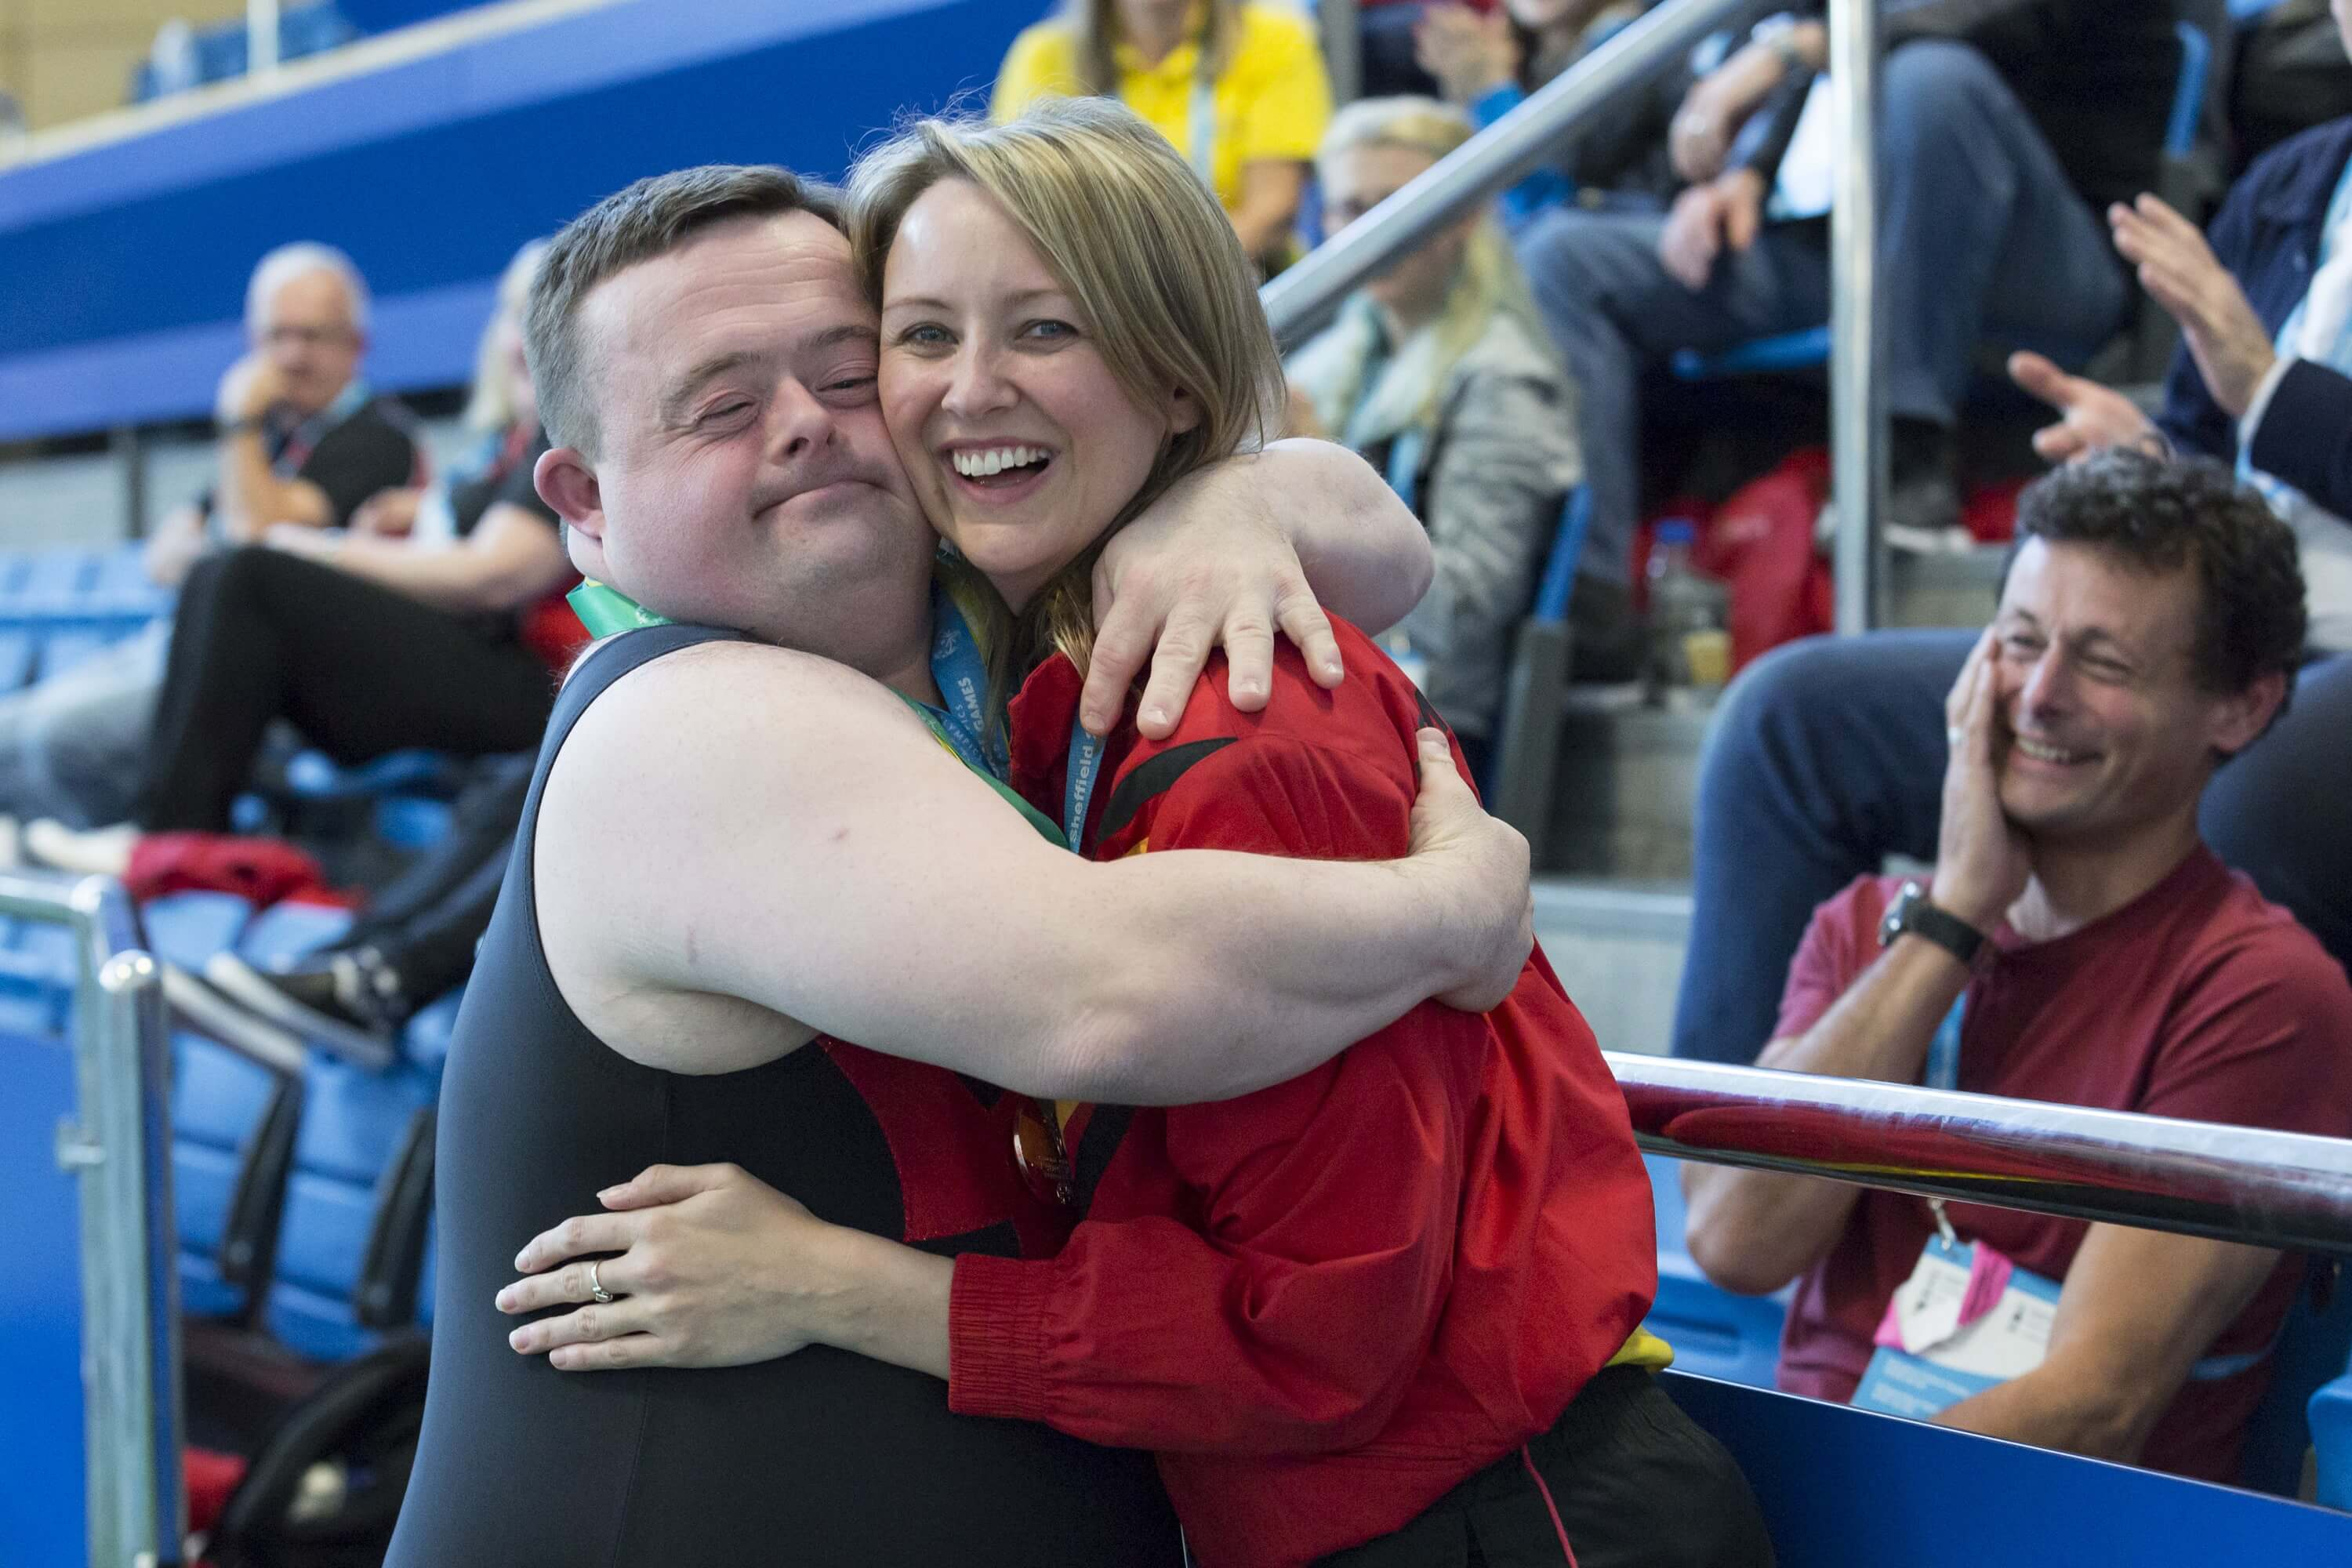 Smiling man with Downs Syndrome hugging happy young woman